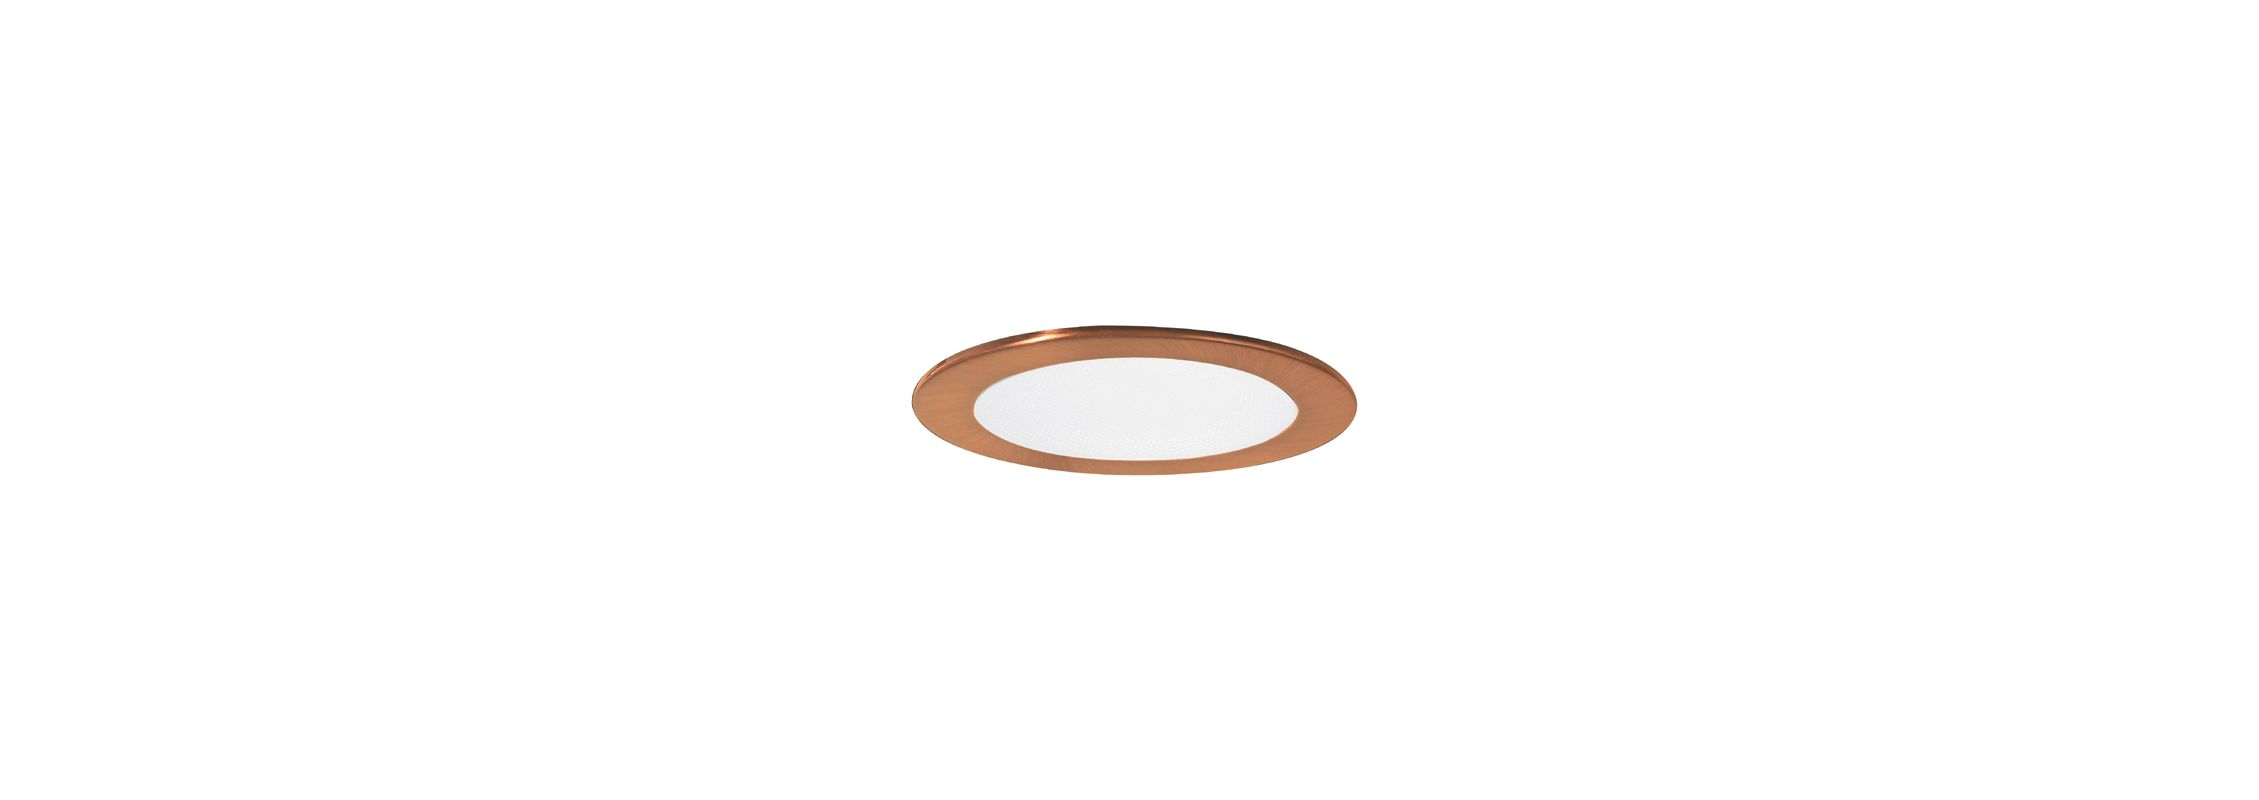 "Elco EL9114 4"" CFL Shower Trim with Albalite Lens and Reflector Copper"